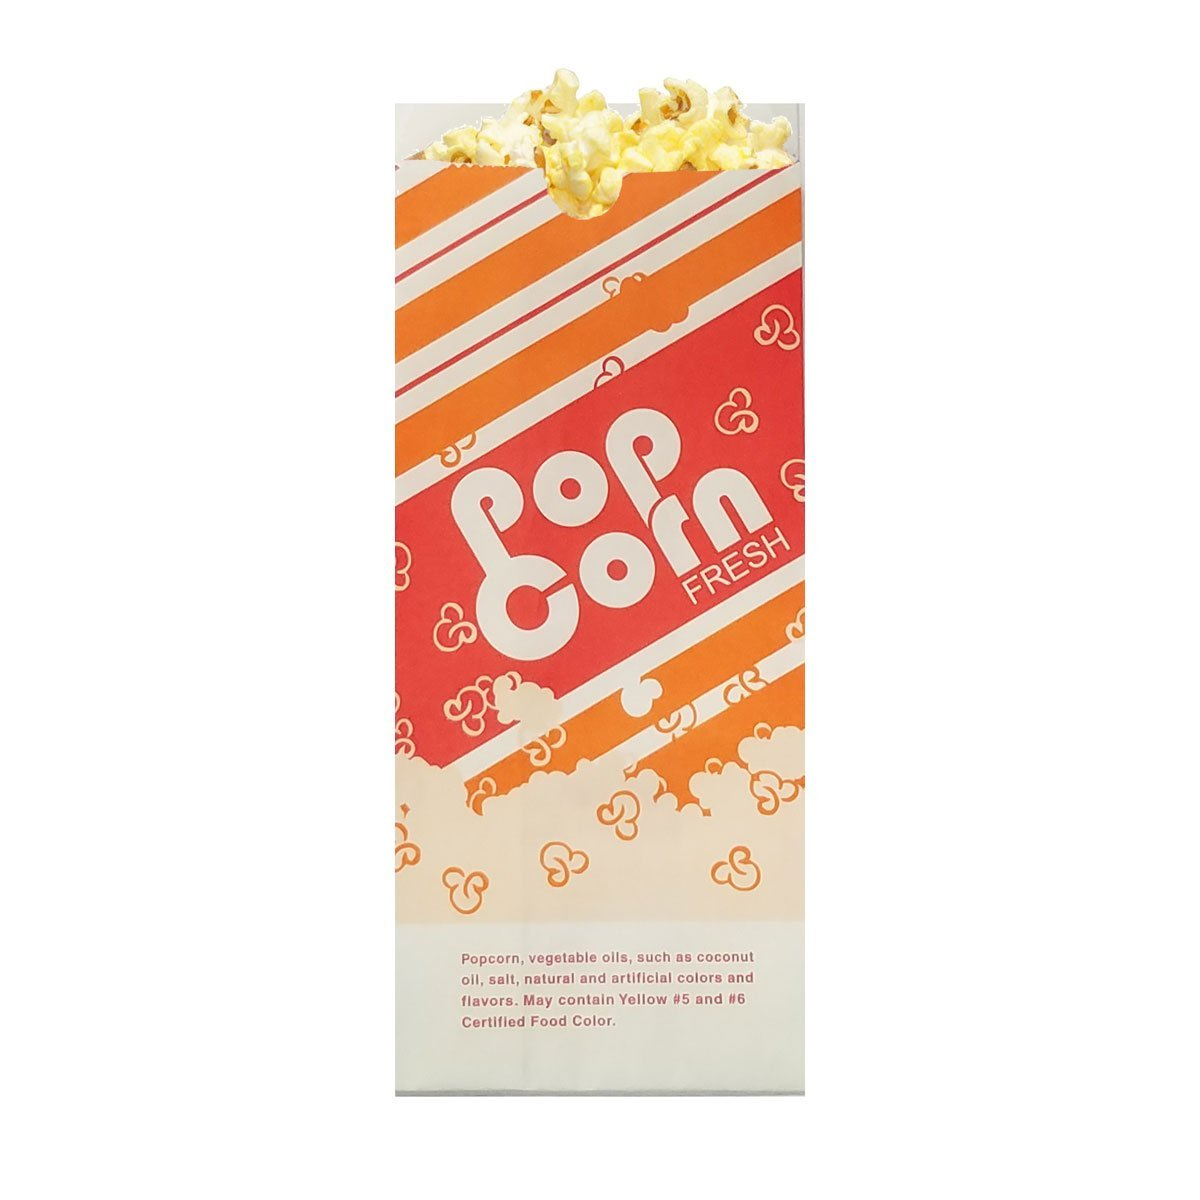 "Hoosier Hill Farm Popcorn Bags (8"") - 50 Count"